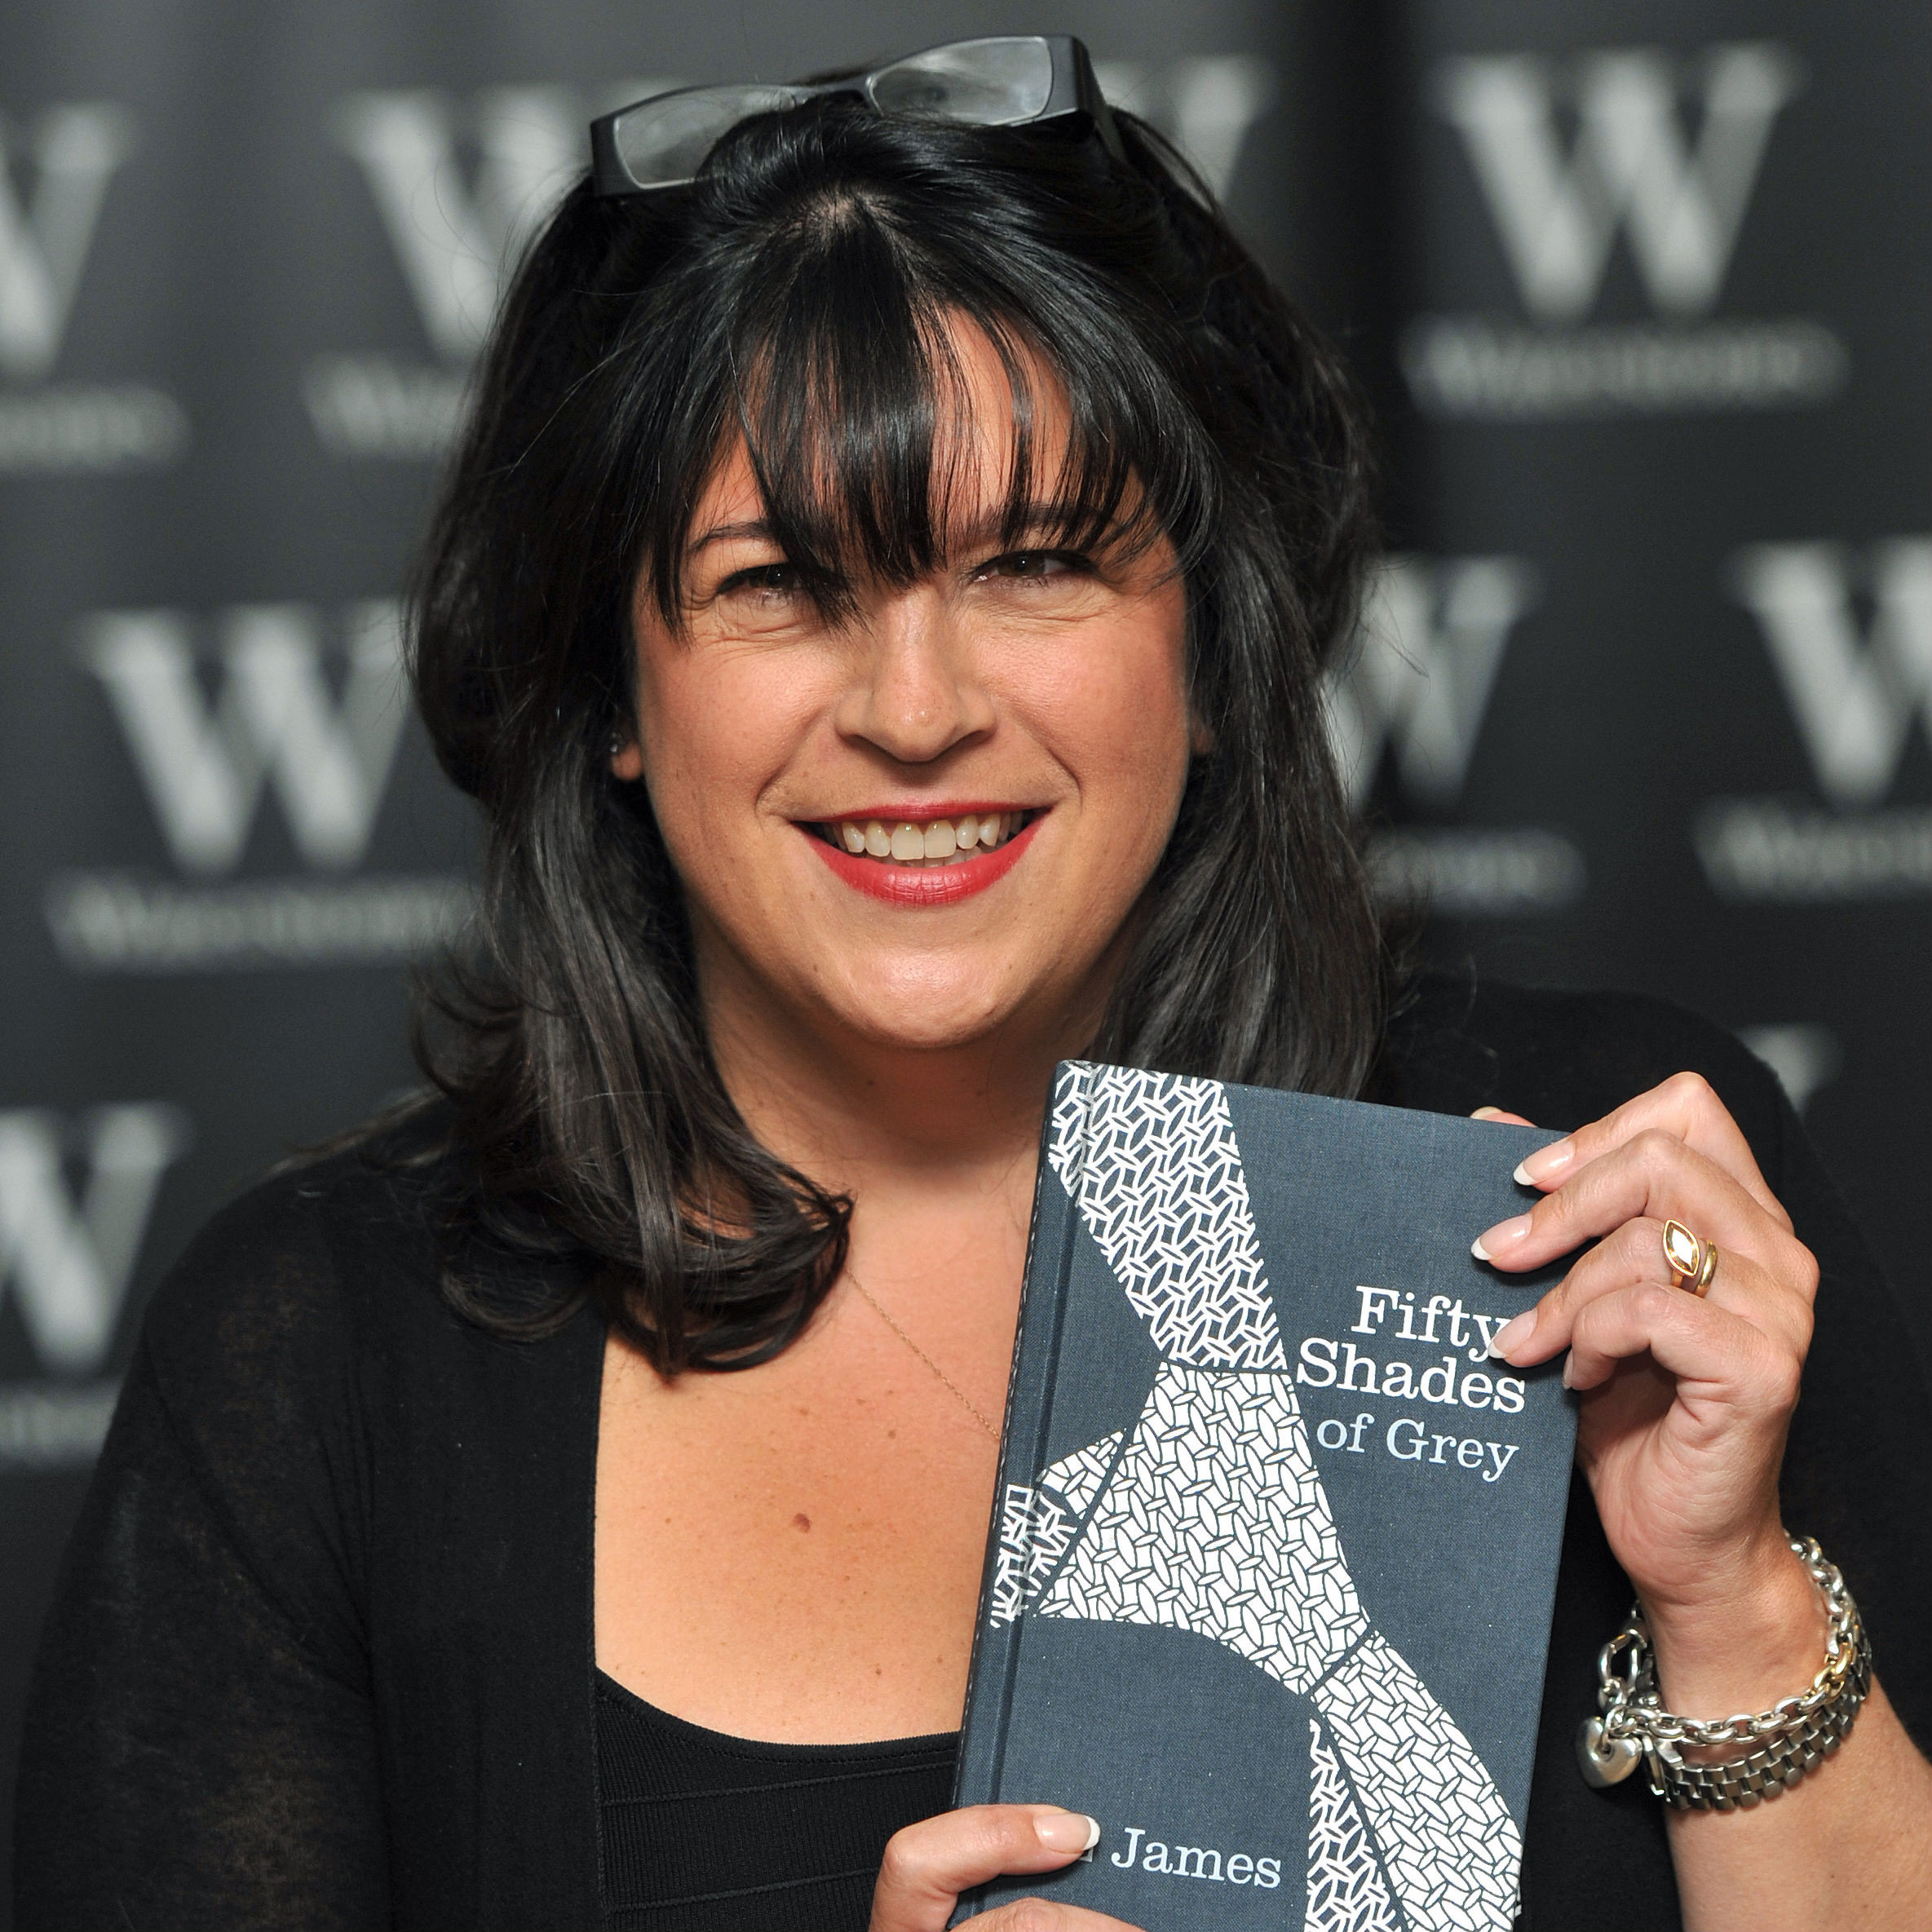 Author Self Published The Fifty Shades Of Grey Novel In 2017 Book Received A Greater Boost When Vintage Random House Publishing